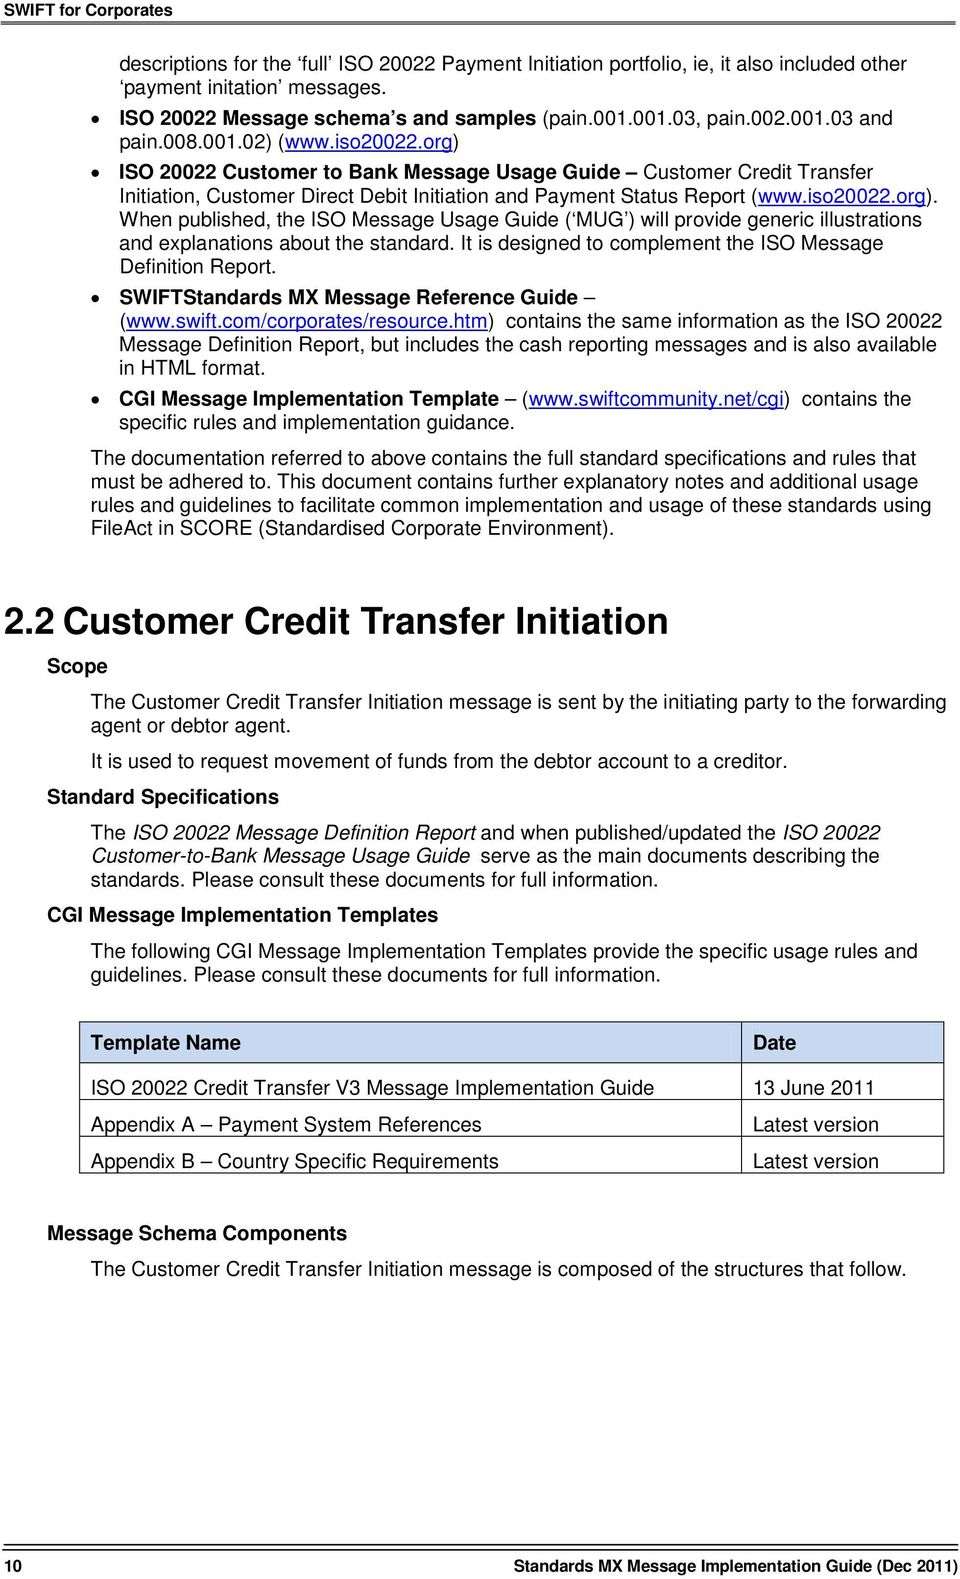 standards mx message implementation guide and rule book pdf rh docplayer net swift standards message reference guide category 1 - customer payments and cheques Swift Message Standards MT101